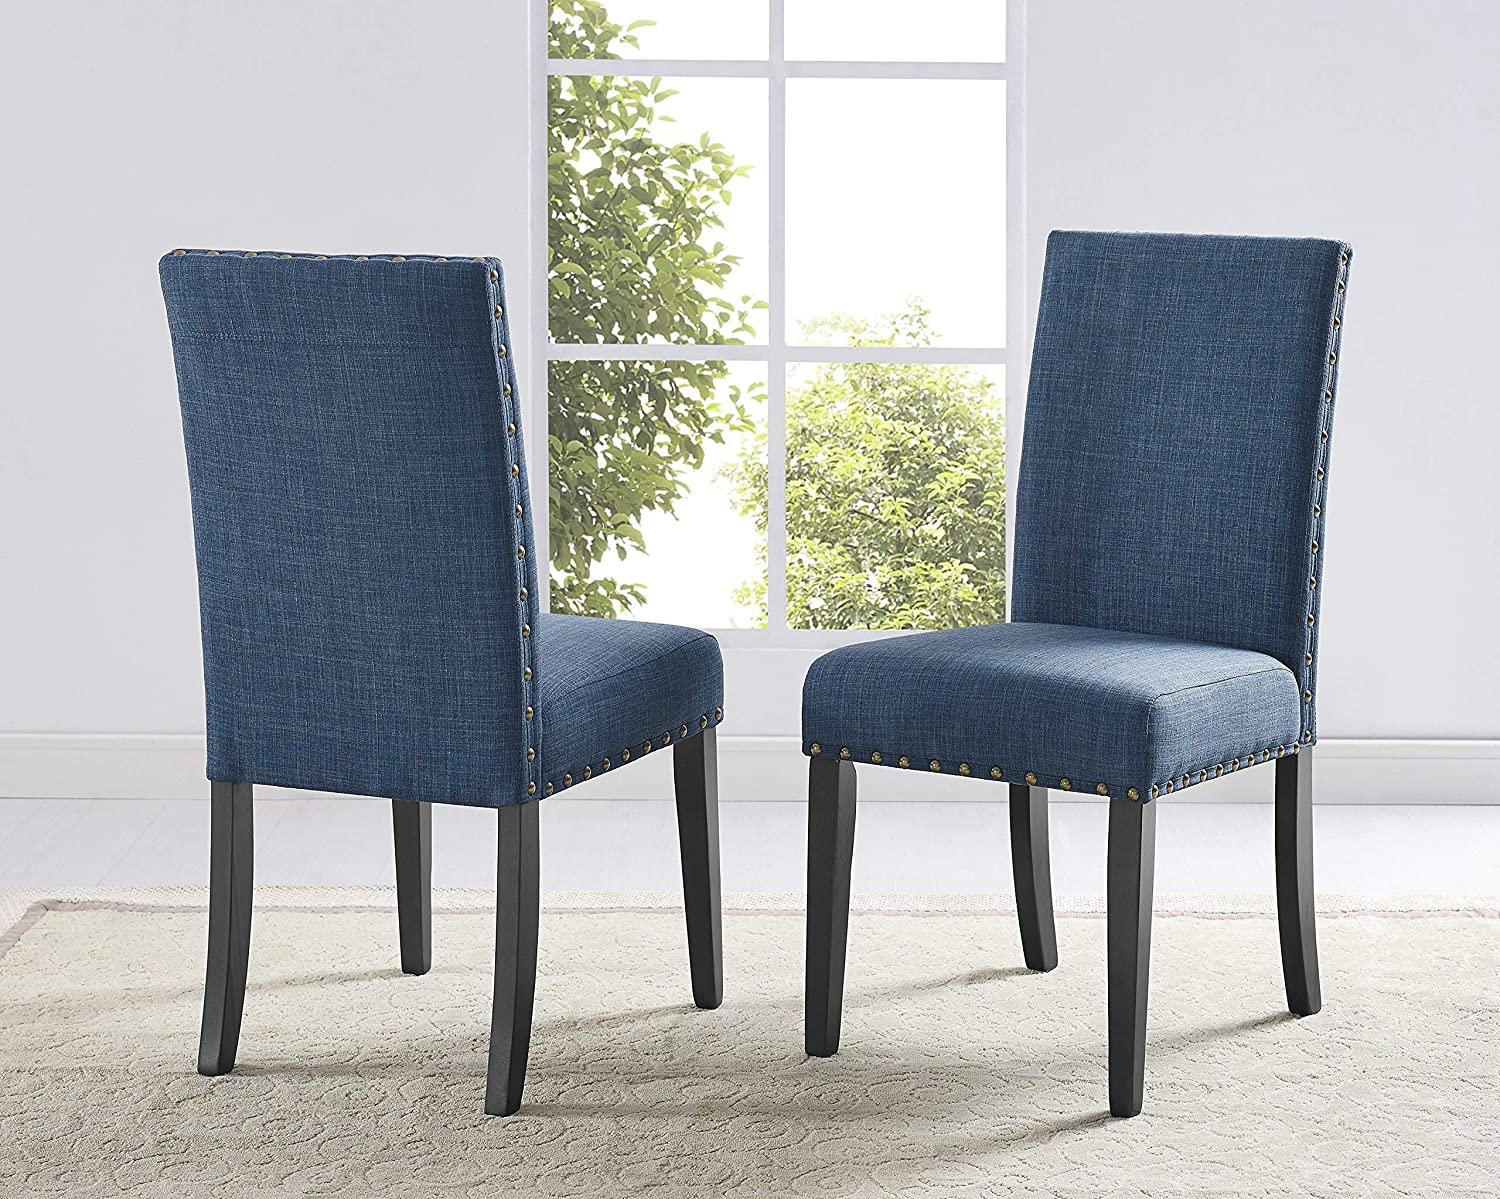 bluee Roundhill Biony bluee Fabric Dining Chairs with Nailhead Trim, Set of 2